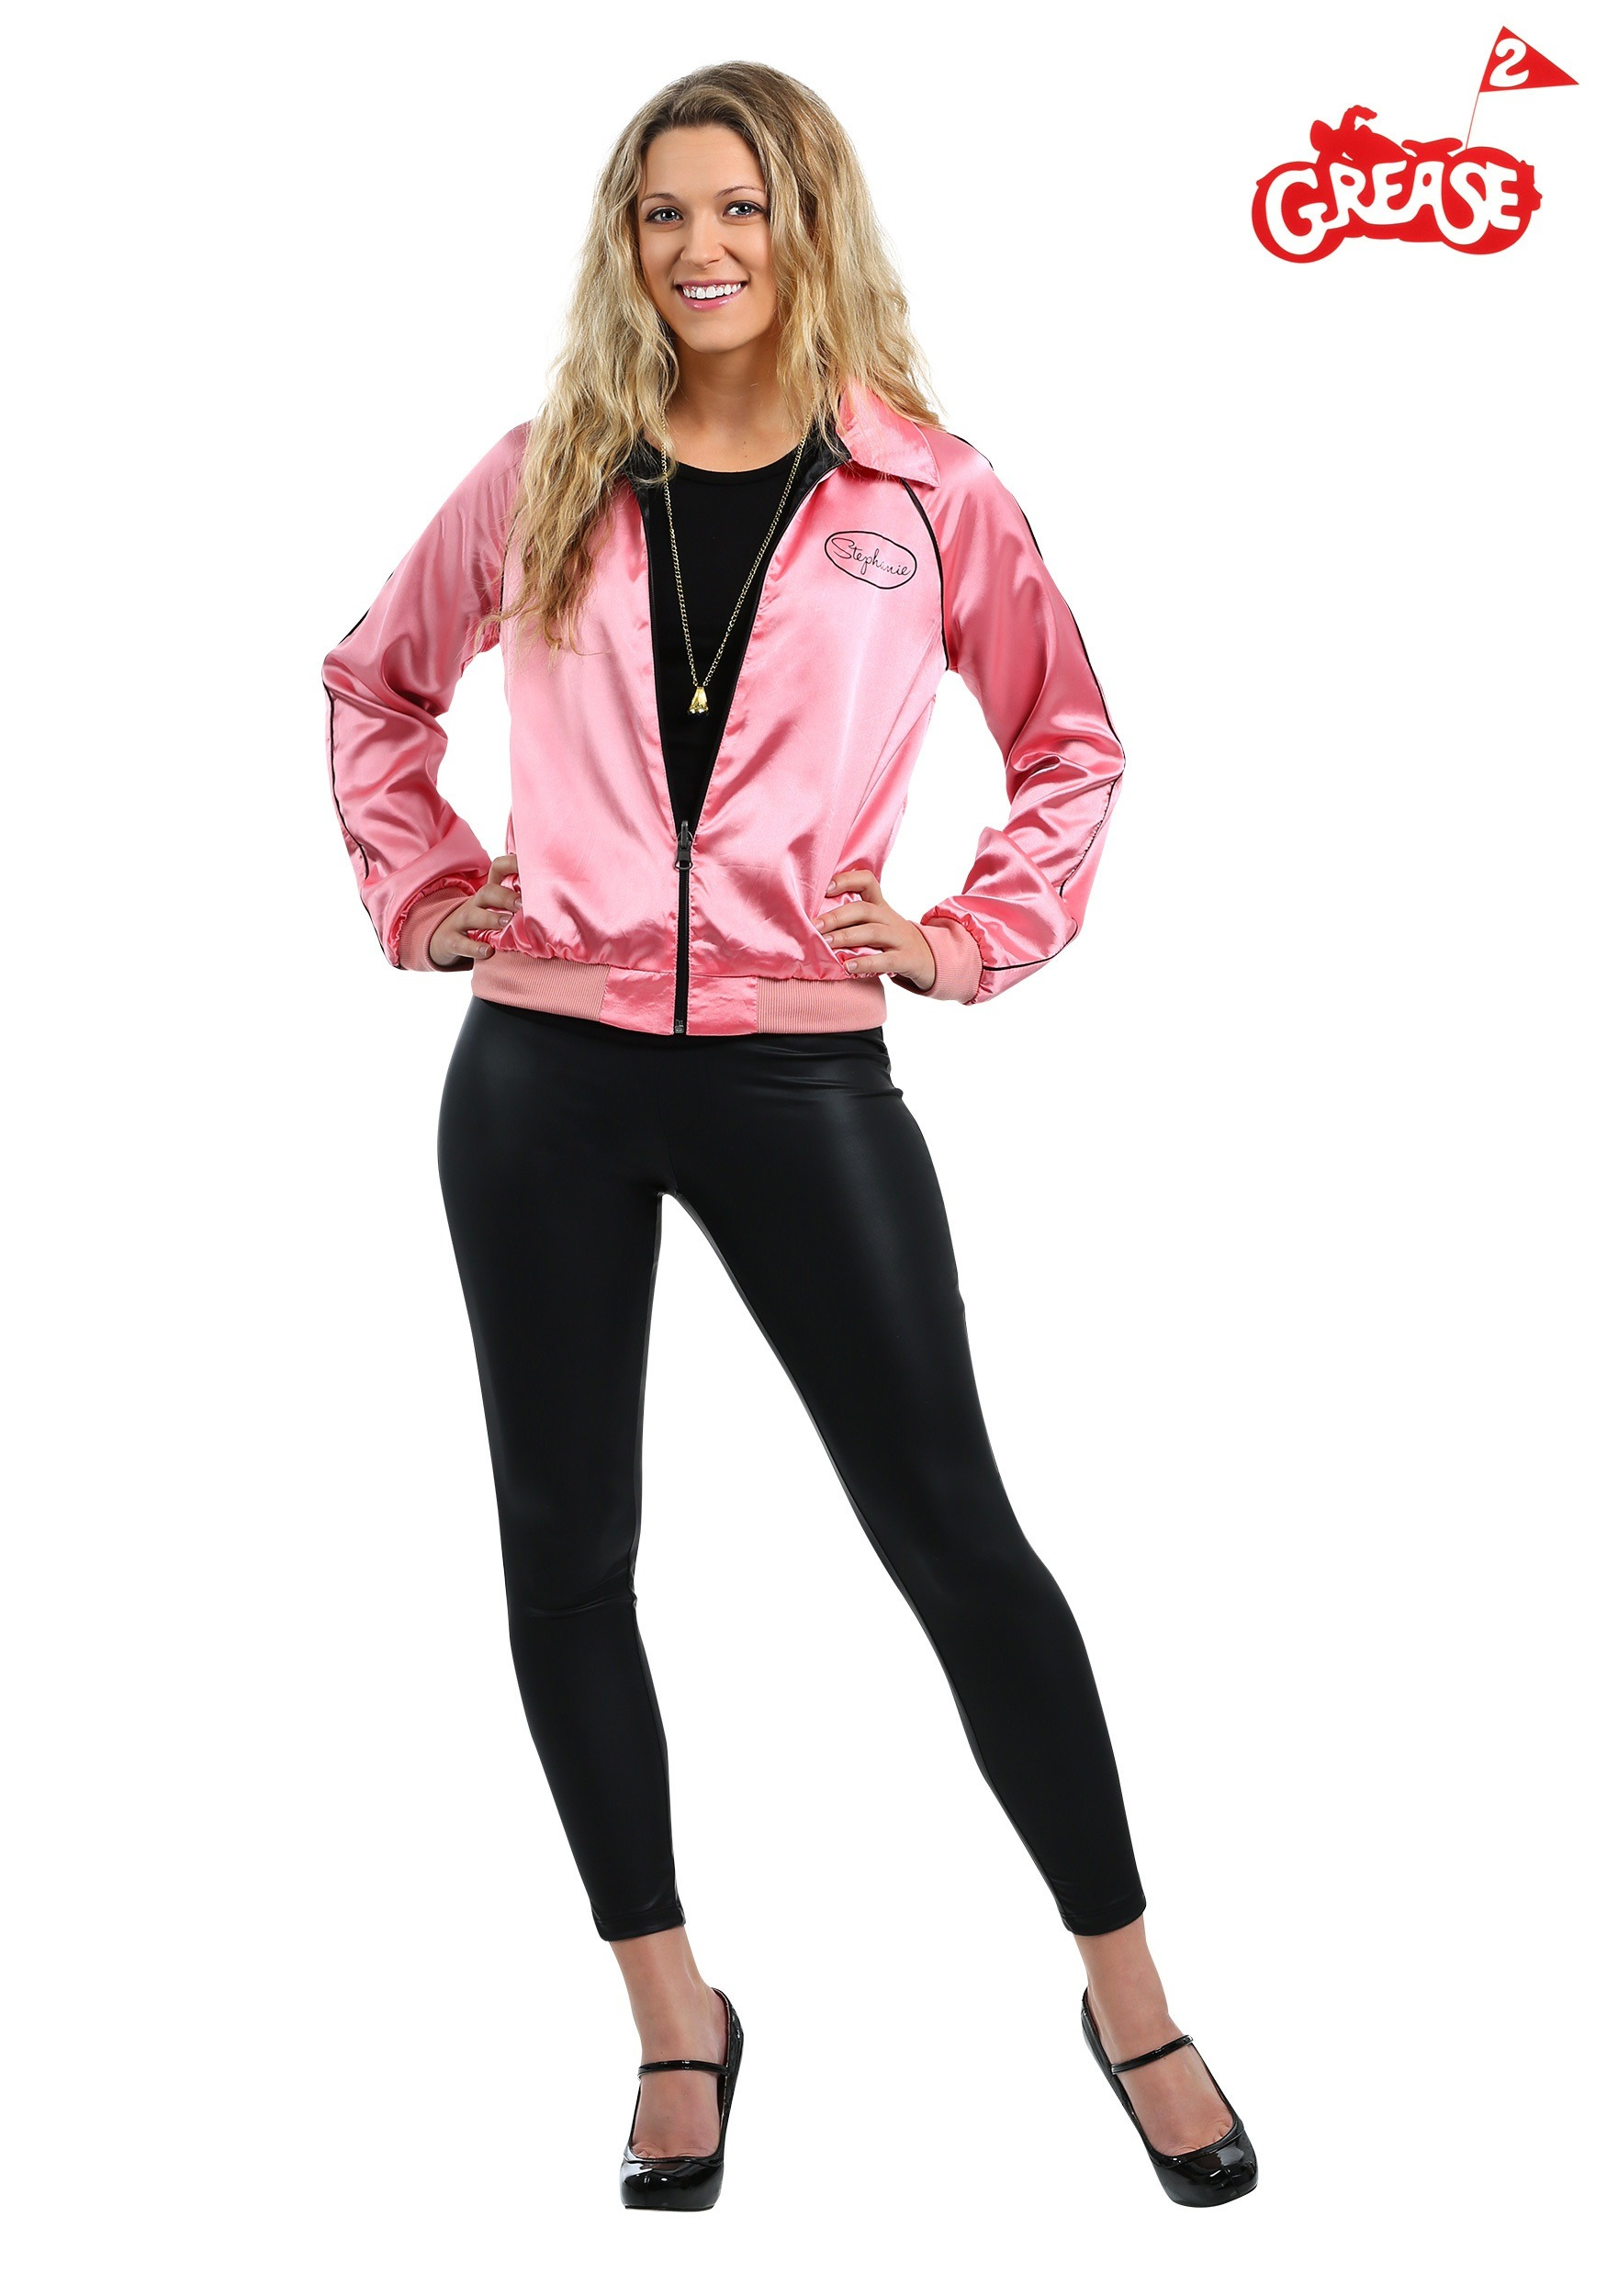 Stephanie S Pink Ladies Jacket From Grease 2